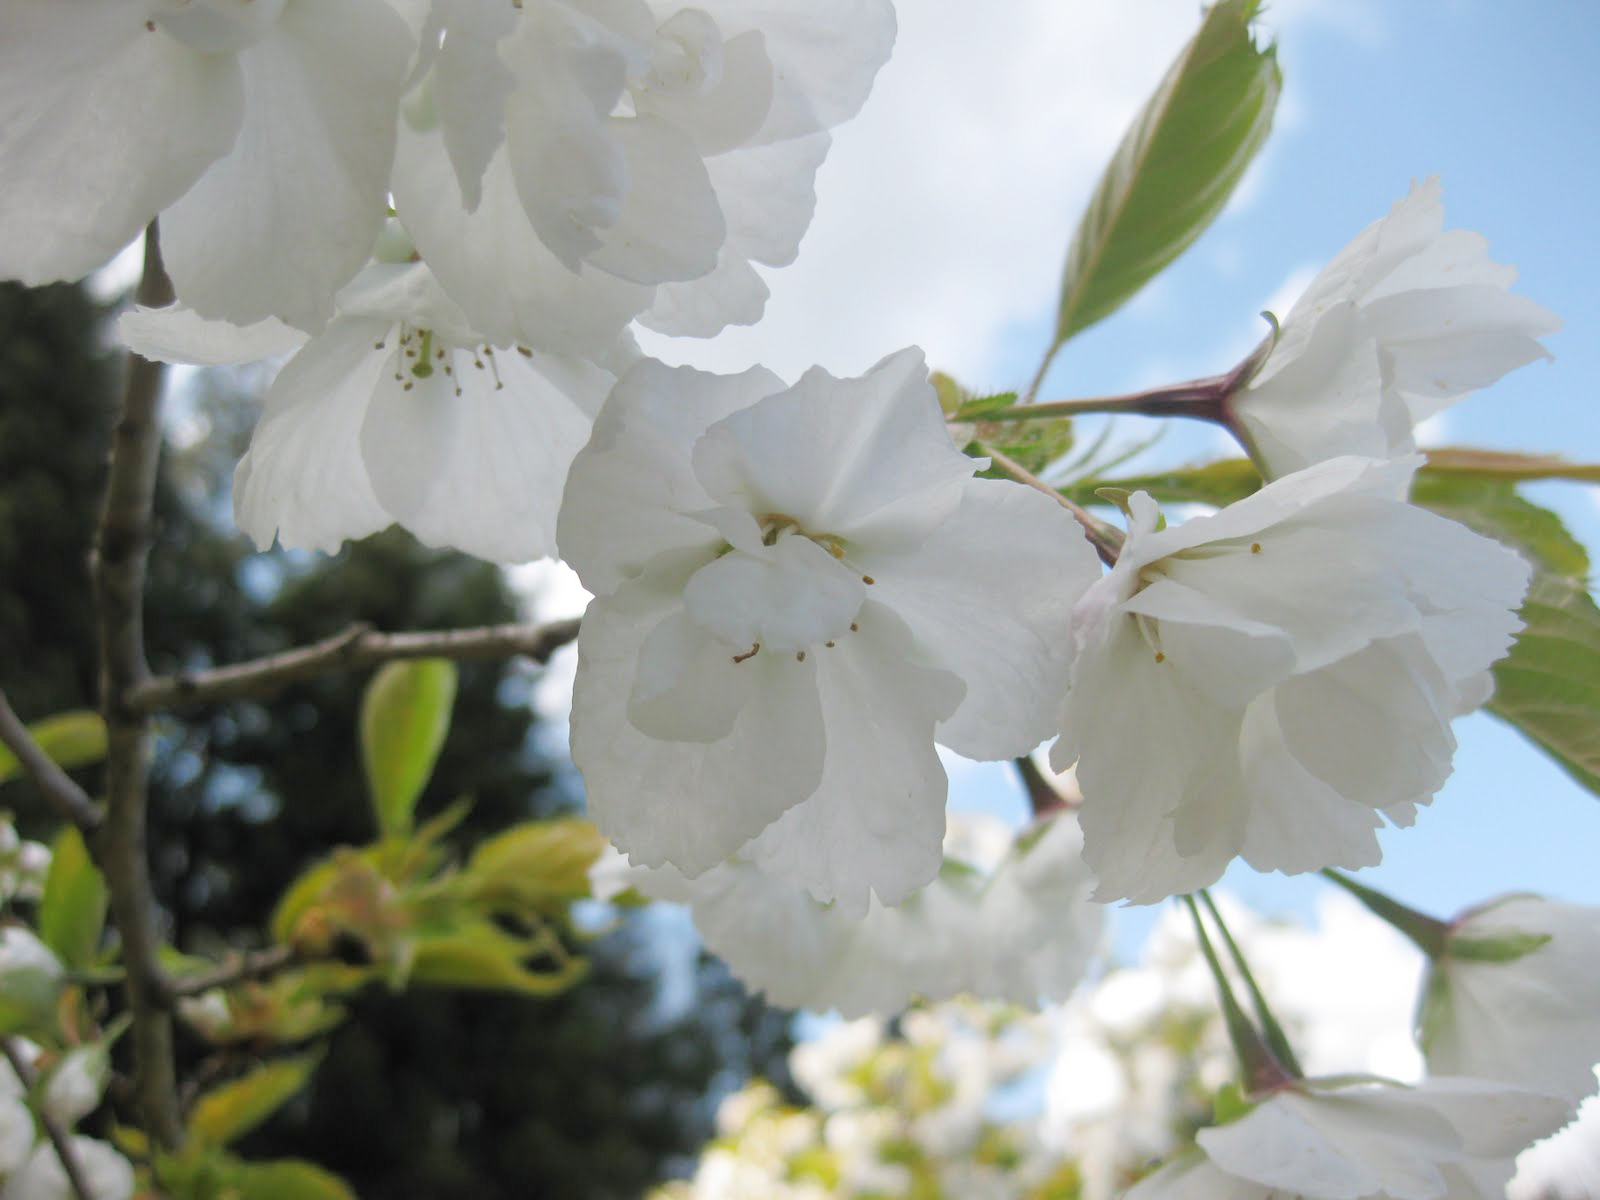 'Shirotae' flowering cherry, flowers (photo by Aleks Monk, 2011)